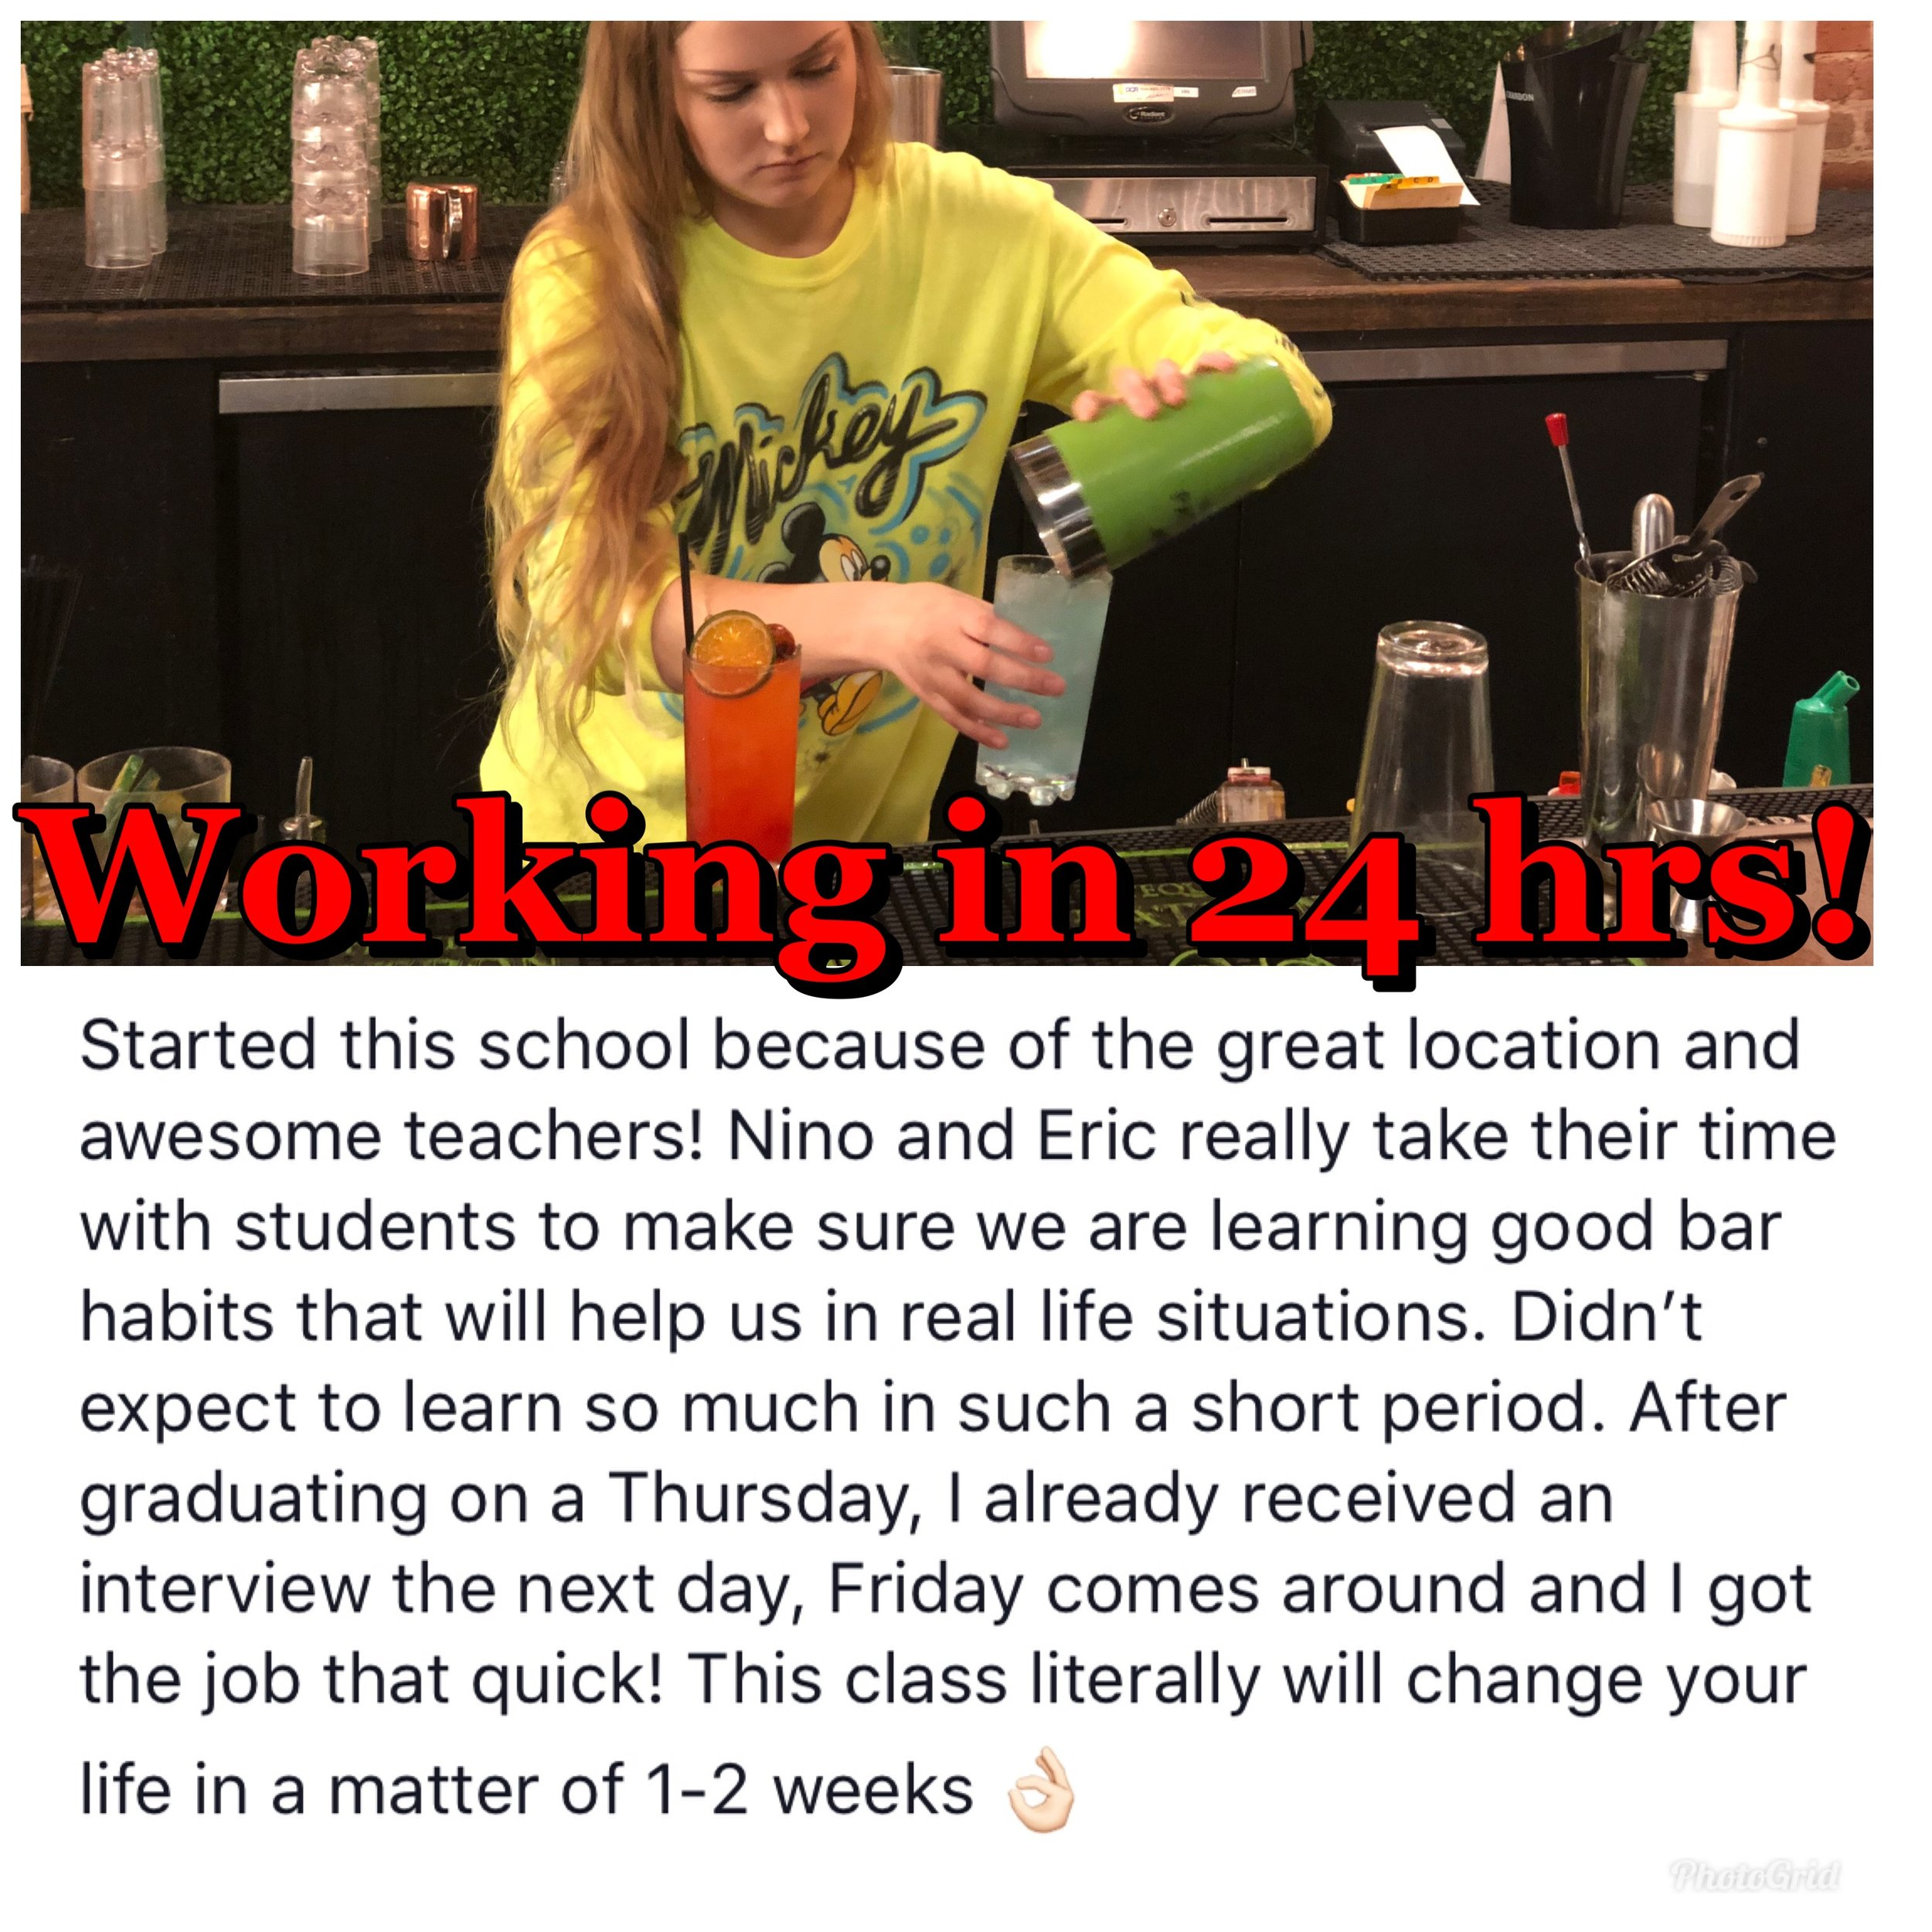 Our success rate is our motivation! We want our students working just as bad as they do, so when it comes to providing job interviews it makes us just as happy! Our connections and relationships with local businesses is endless and makes so many of these Bartending success stories happen.